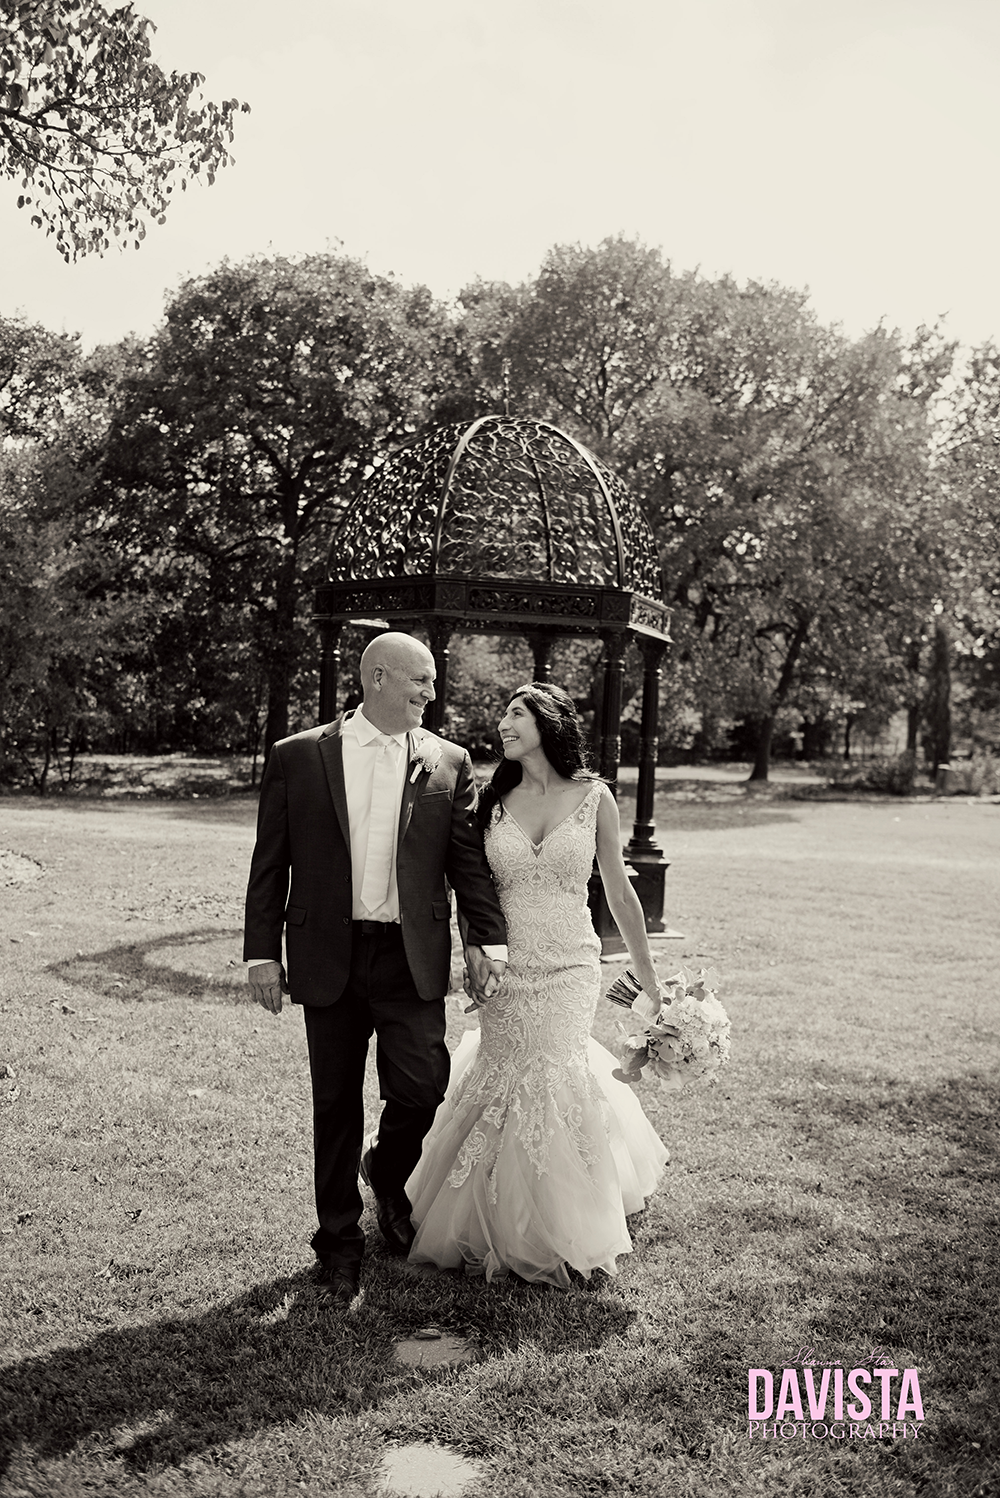 Dallas wedding photos